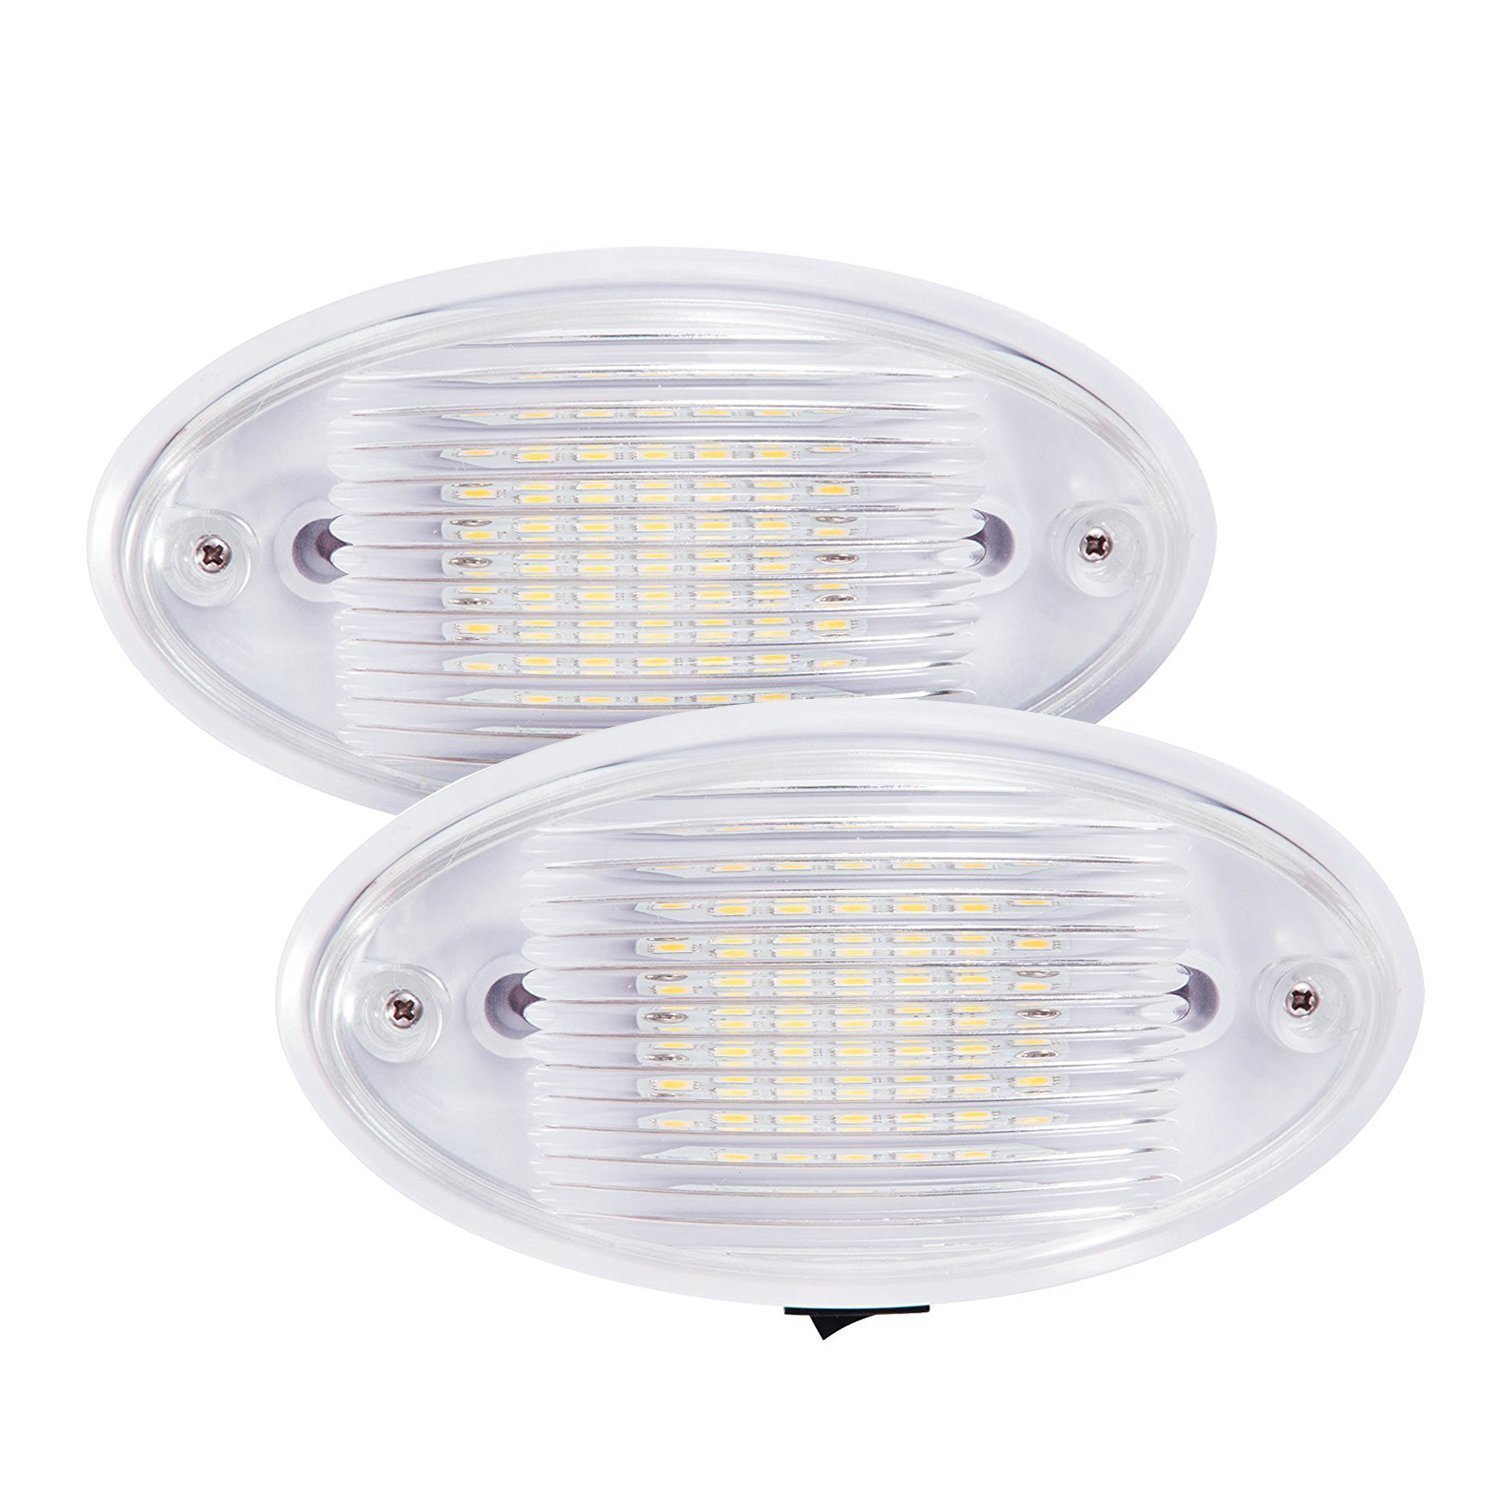 Amazon kohree led ceiling porch light fixture 12v rv interior amazon kohree led ceiling porch light fixture 12v rv interior and exterior lighting for trailercamperboat with onoff switch and removable lens arubaitofo Choice Image